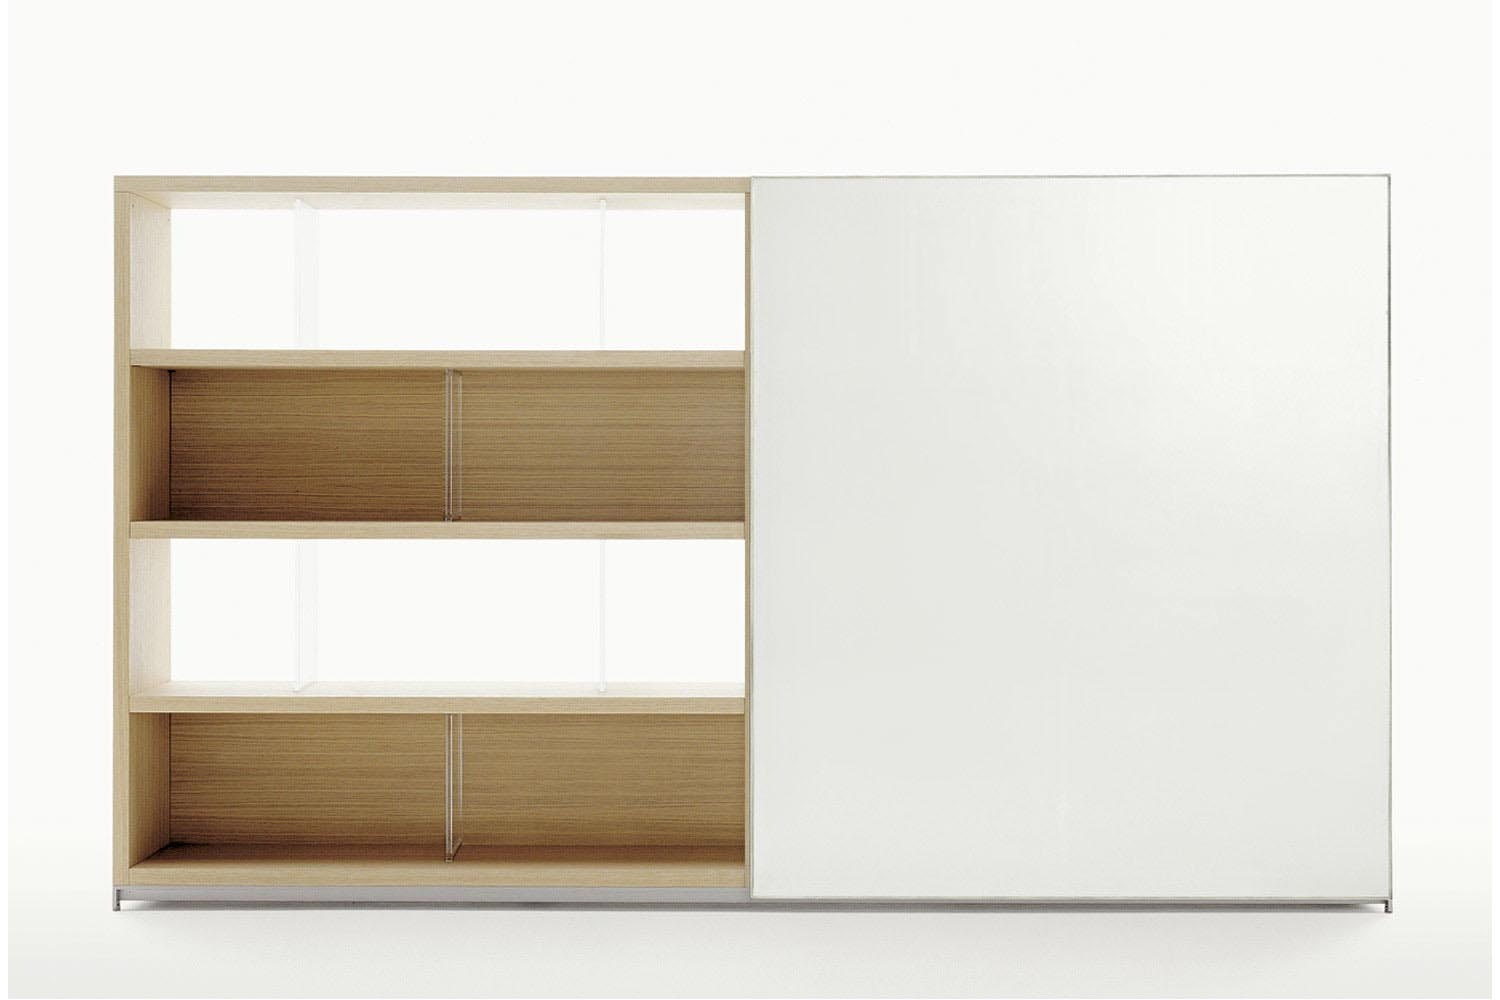 Mida ACLS3 Bookcase by Antonio Citterio for Maxalto